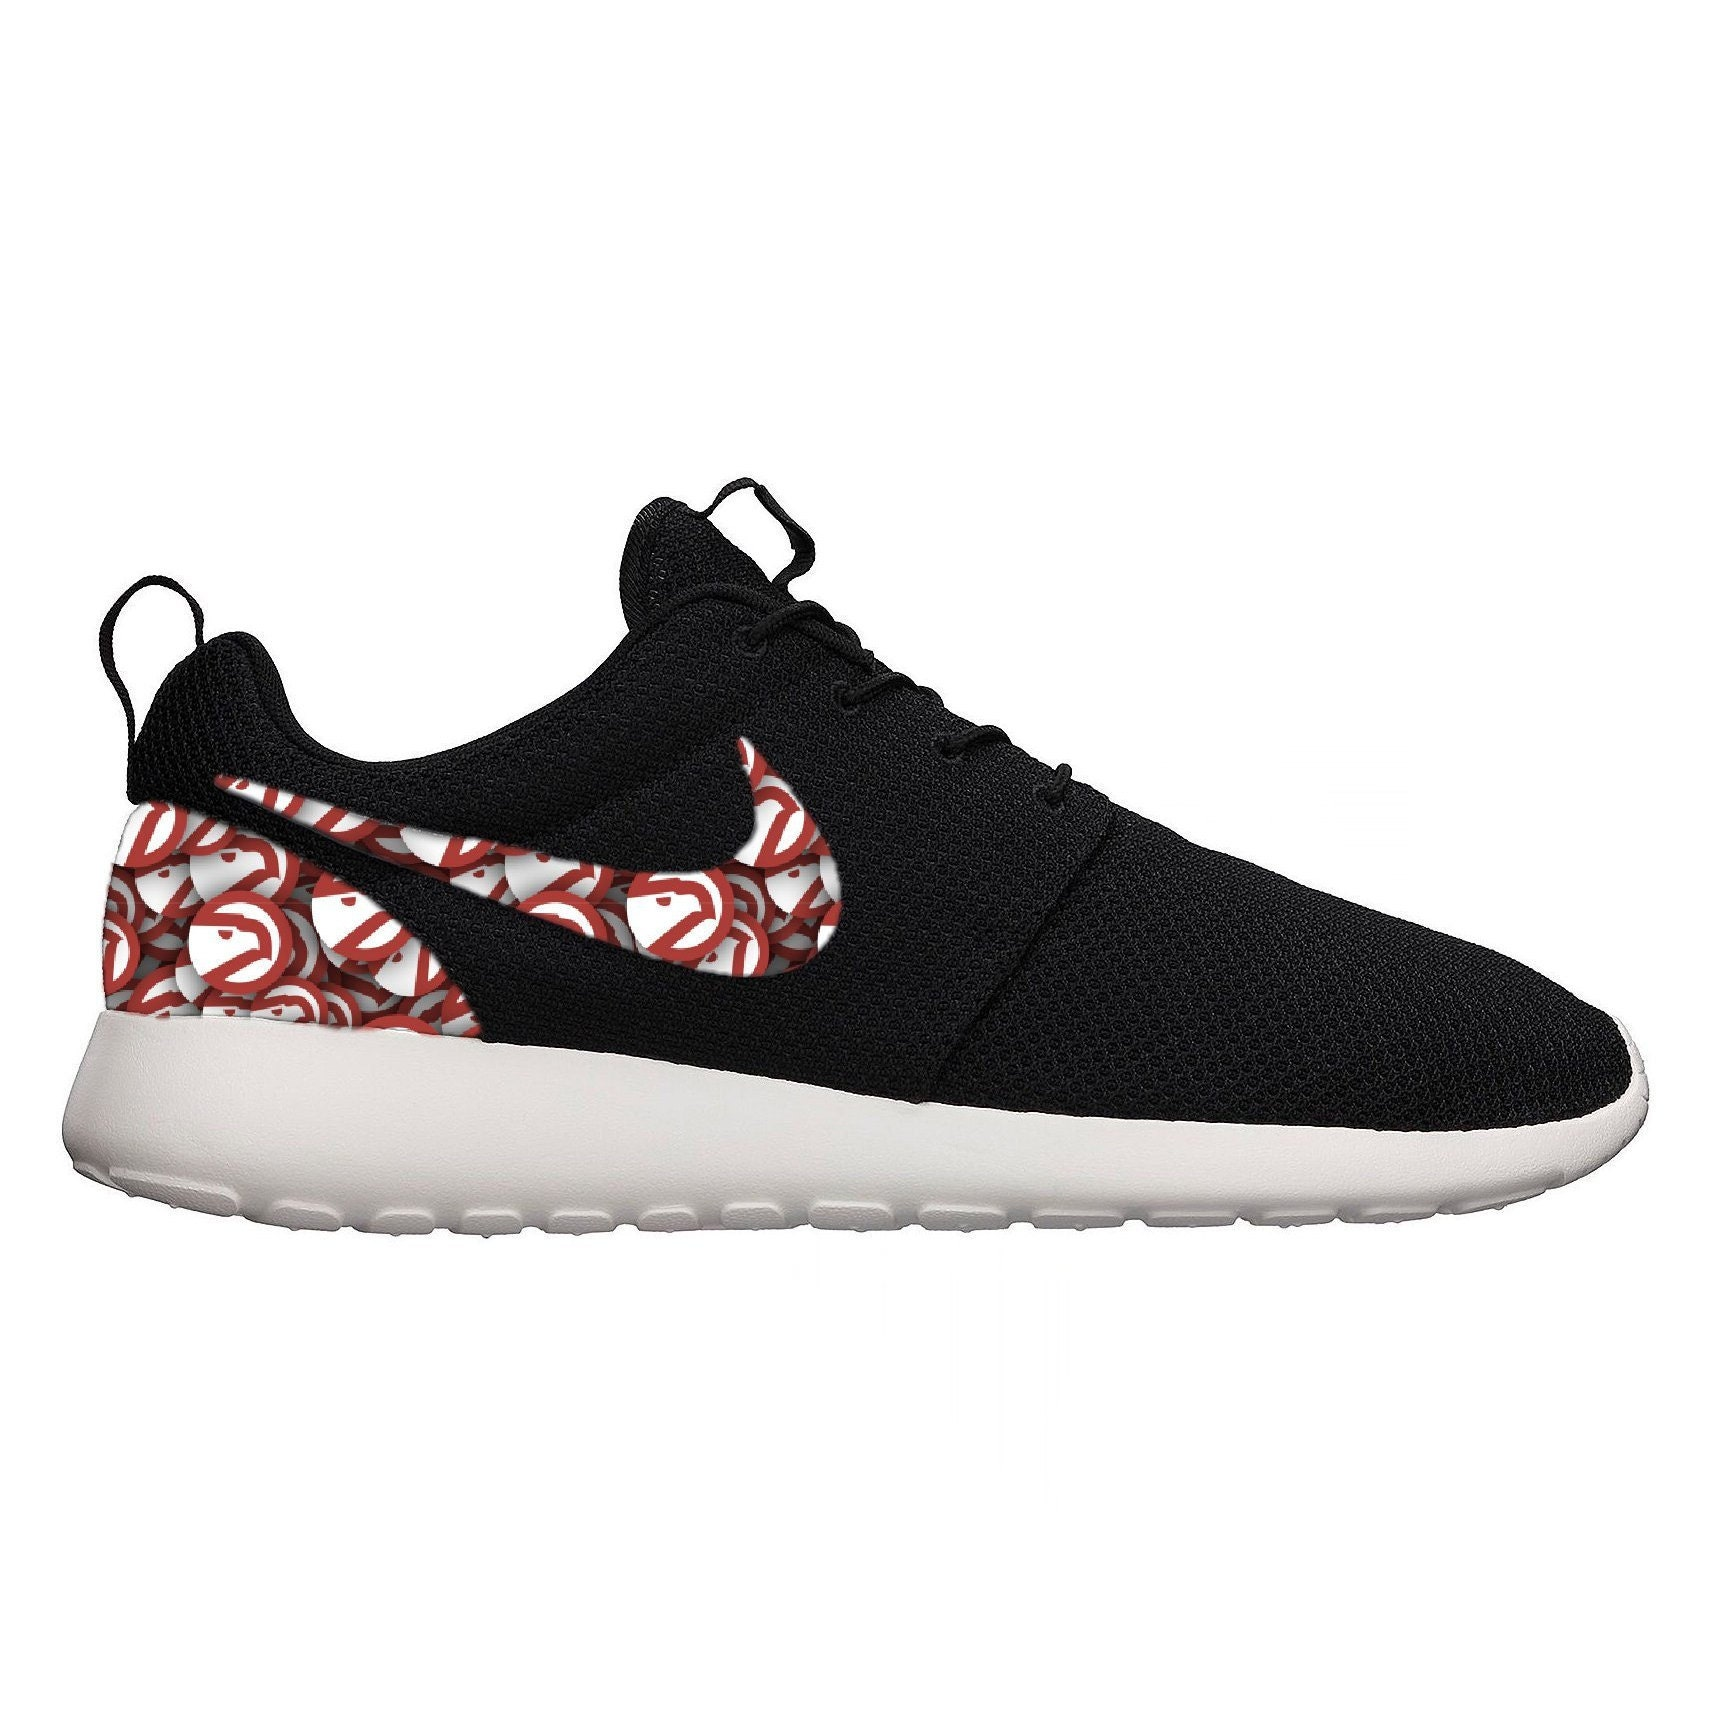 wholesale dealer 2294b df903 Atlanta Hawks NBA Custom Black Nike Roshe Run Sneakers   Etsy